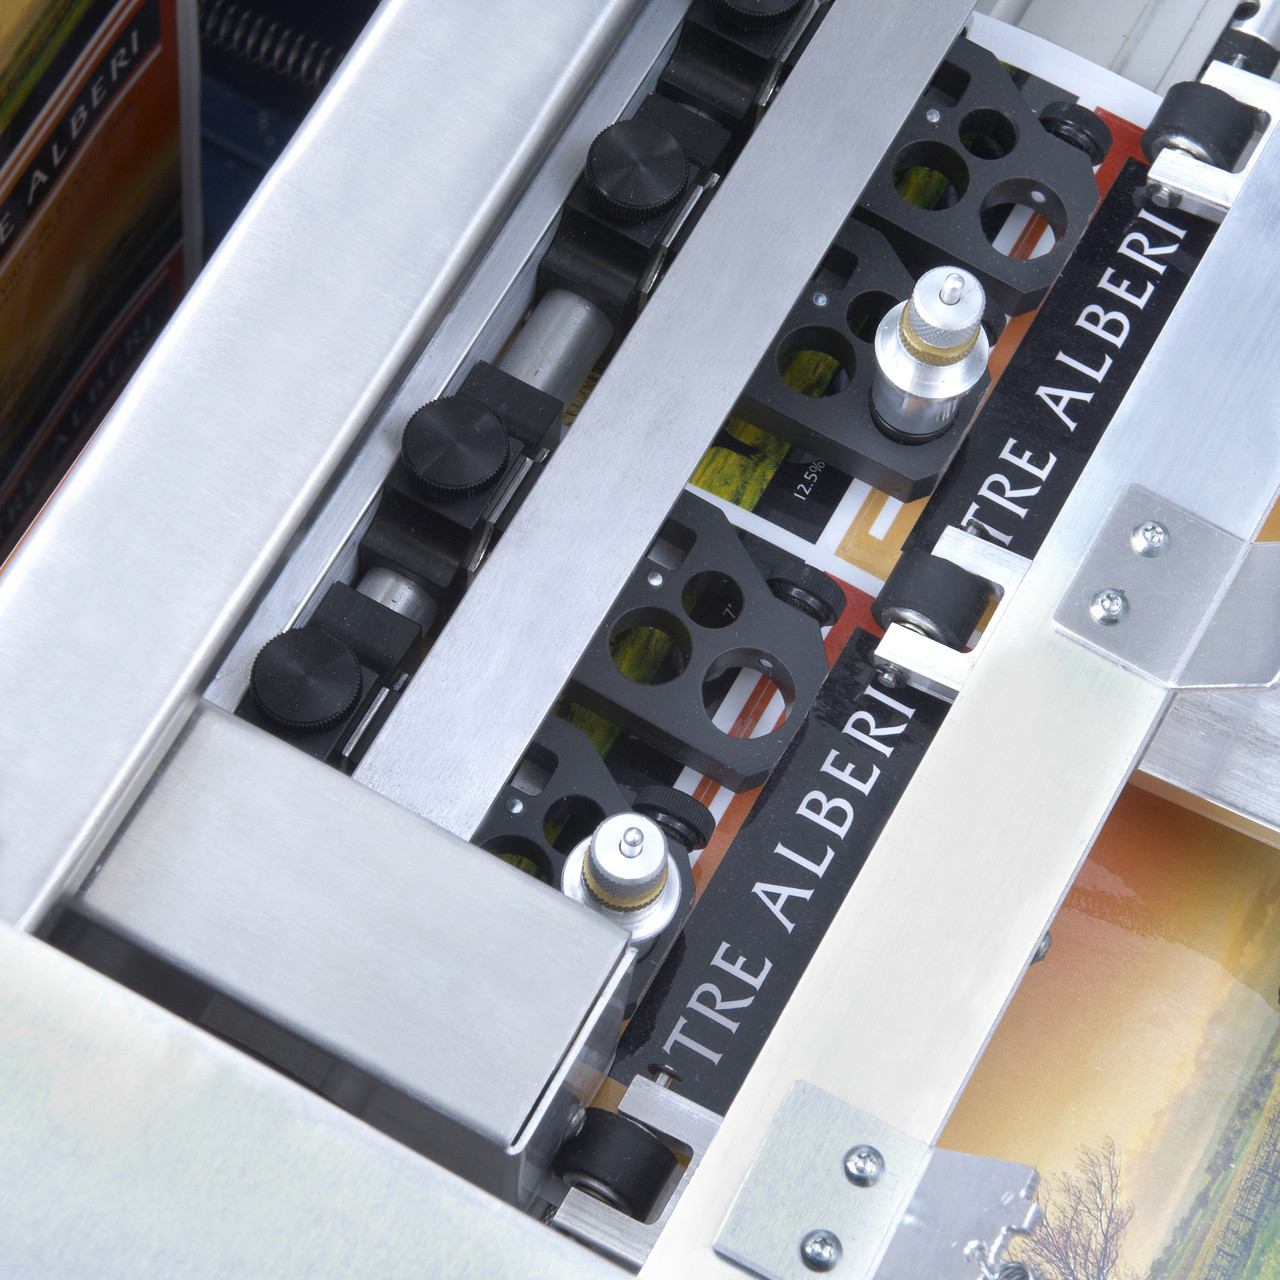 Digital cutter on the Primera FX1200 label finishing system. Can you any shape label required without die's.